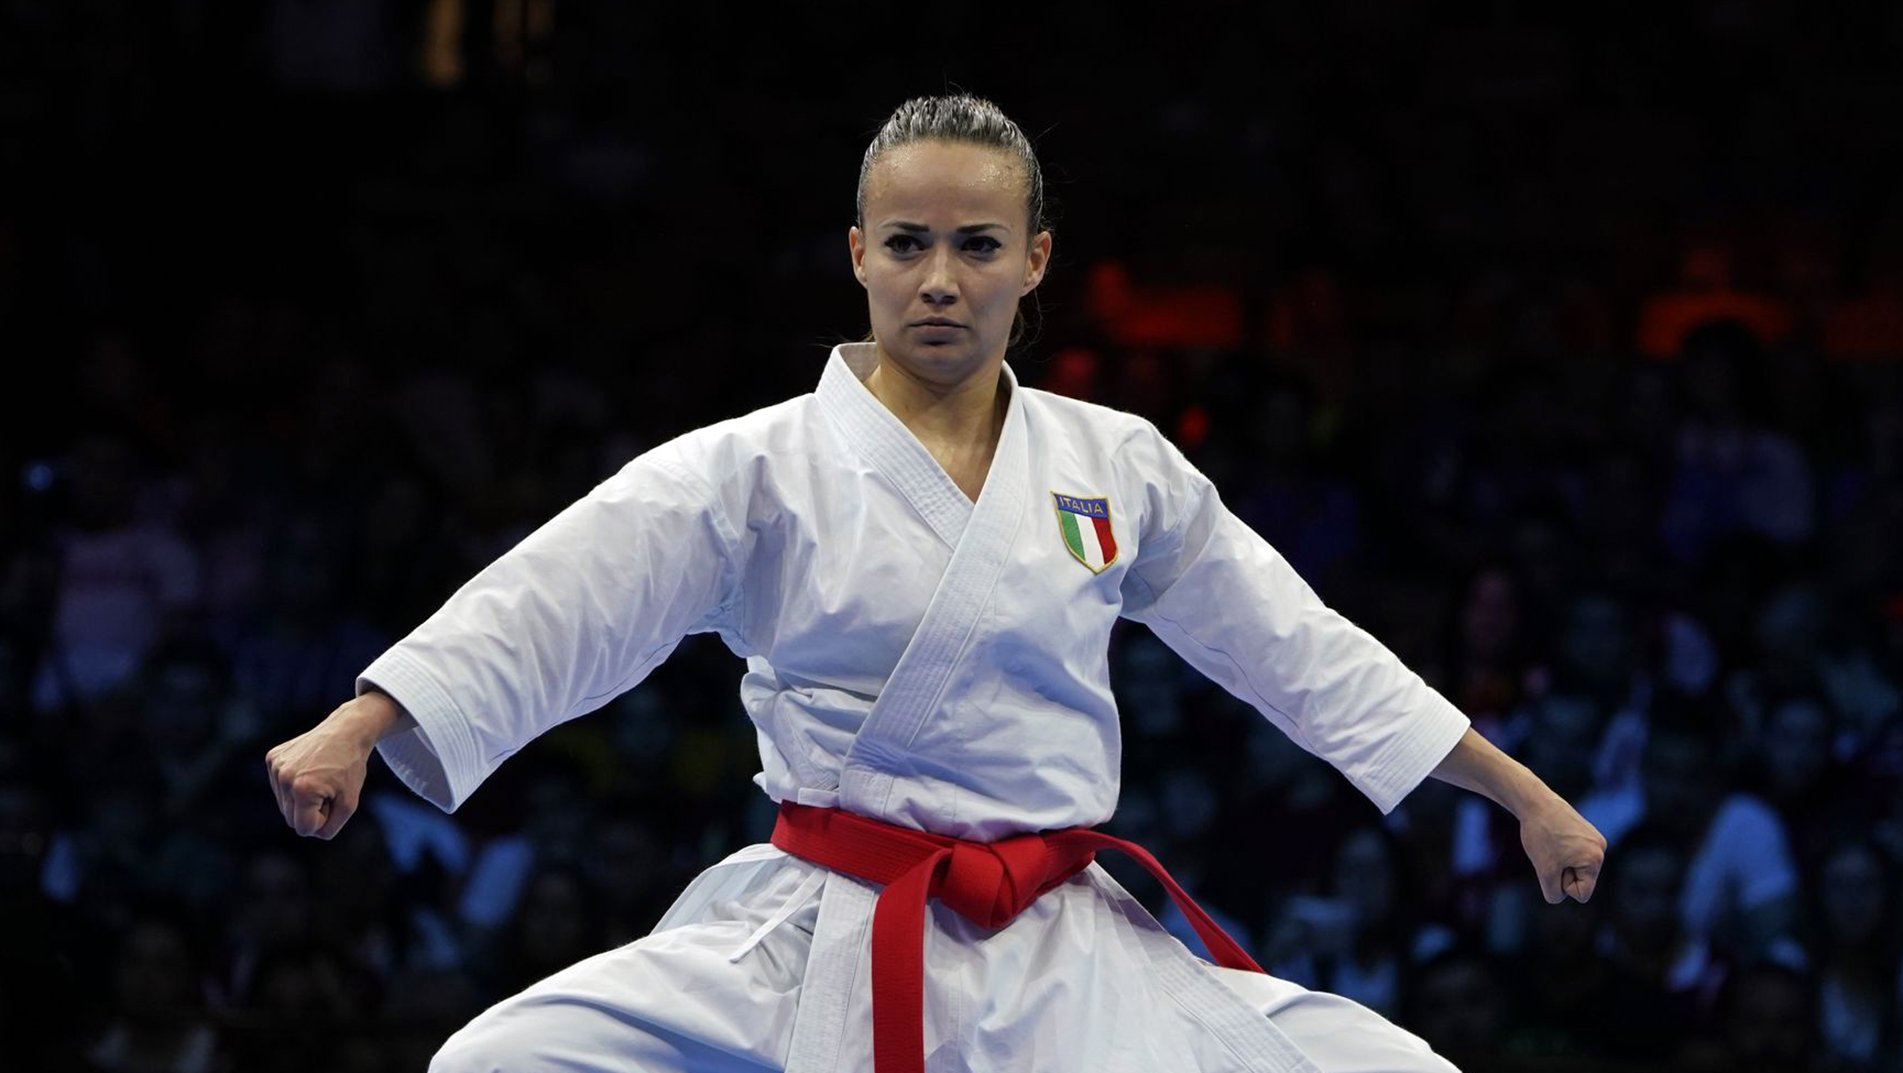 Viviana Bottaro: I am honoured to represent my country at the Olympic Games